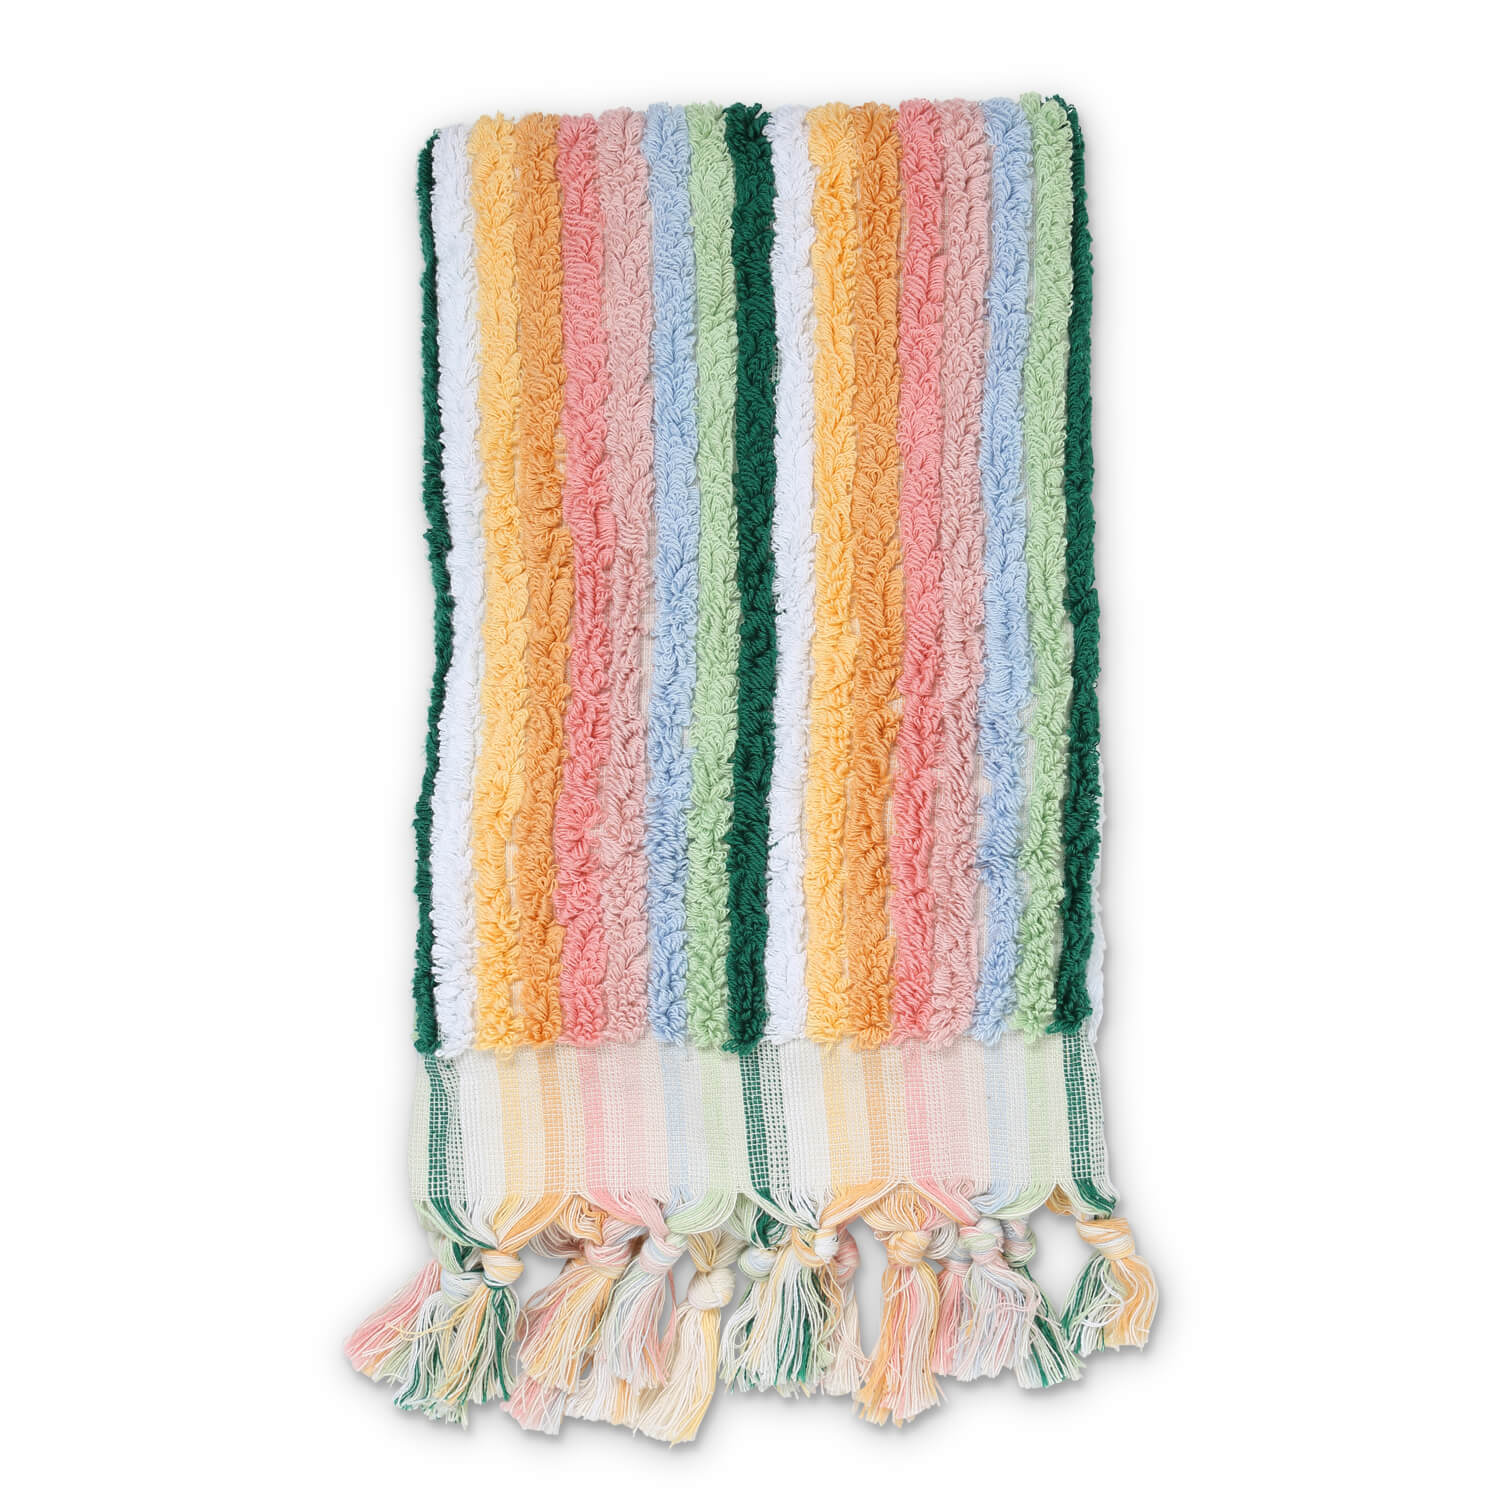 Kip and co turkish towels stripes hand towel |The Home Maven